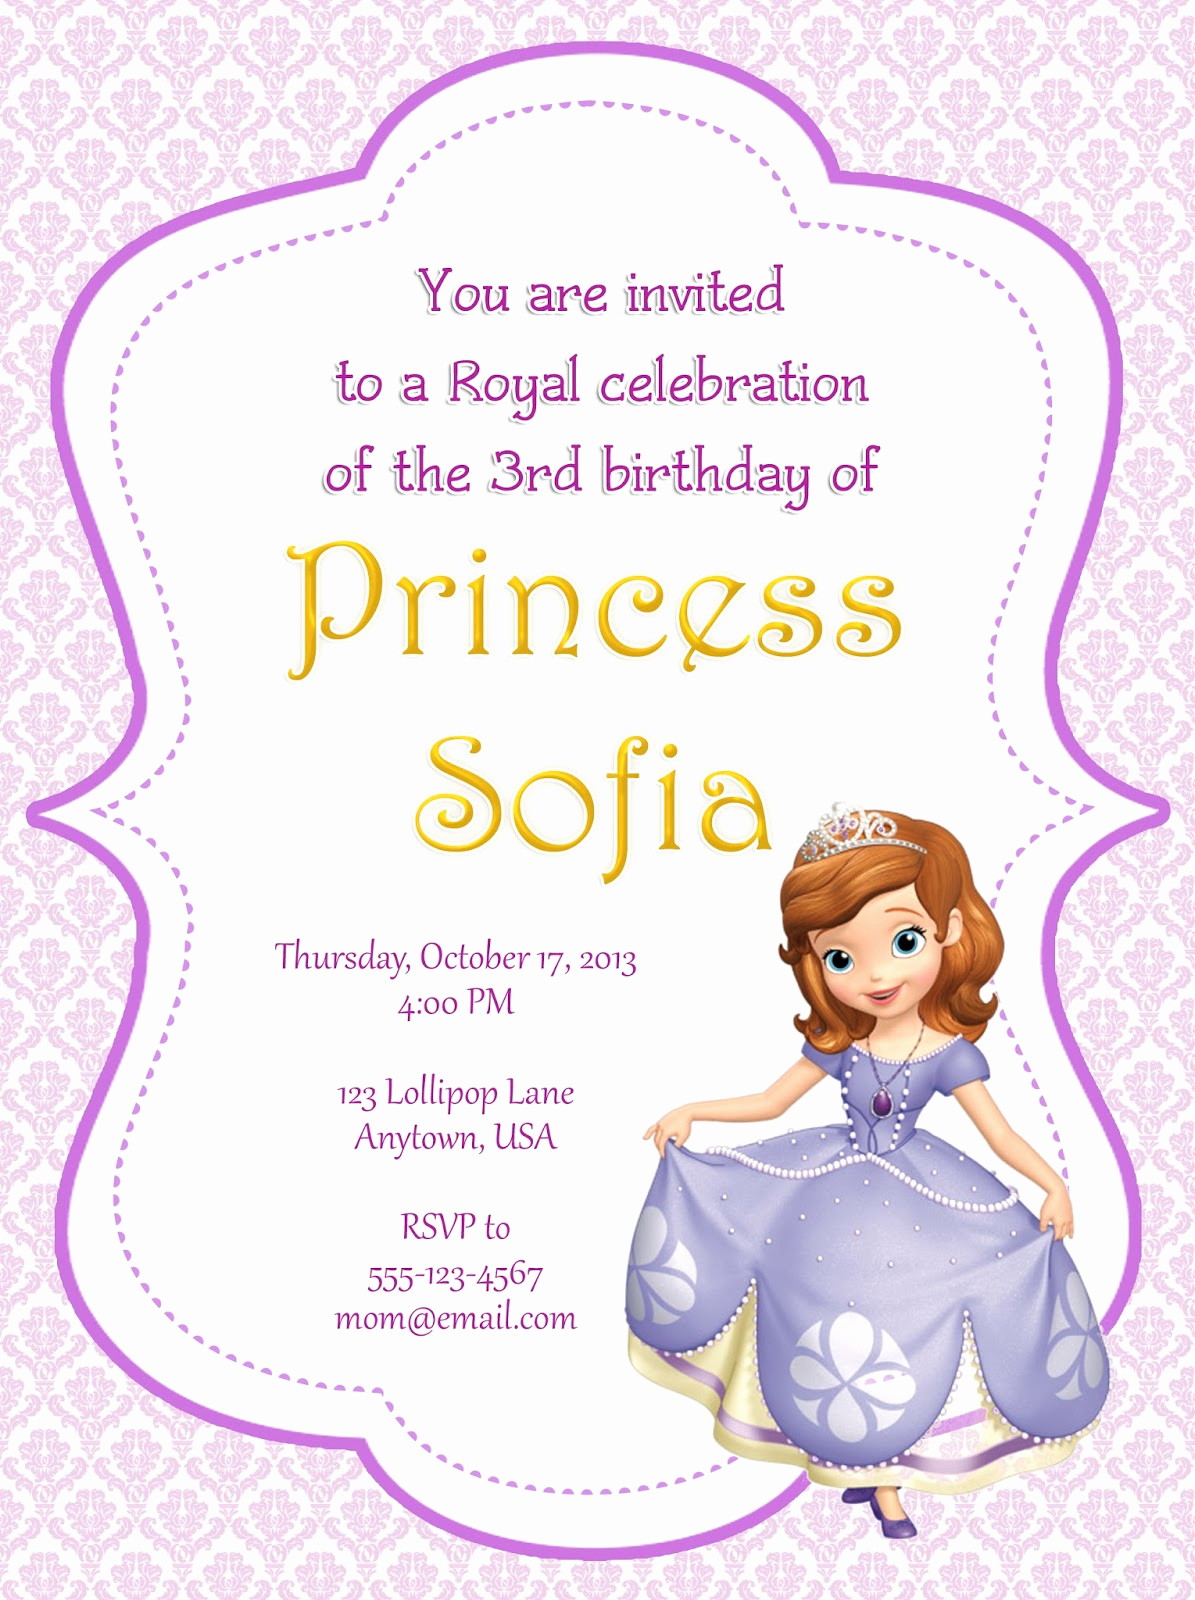 Sofia the First Invitation Template Luxury I Make I August 2013